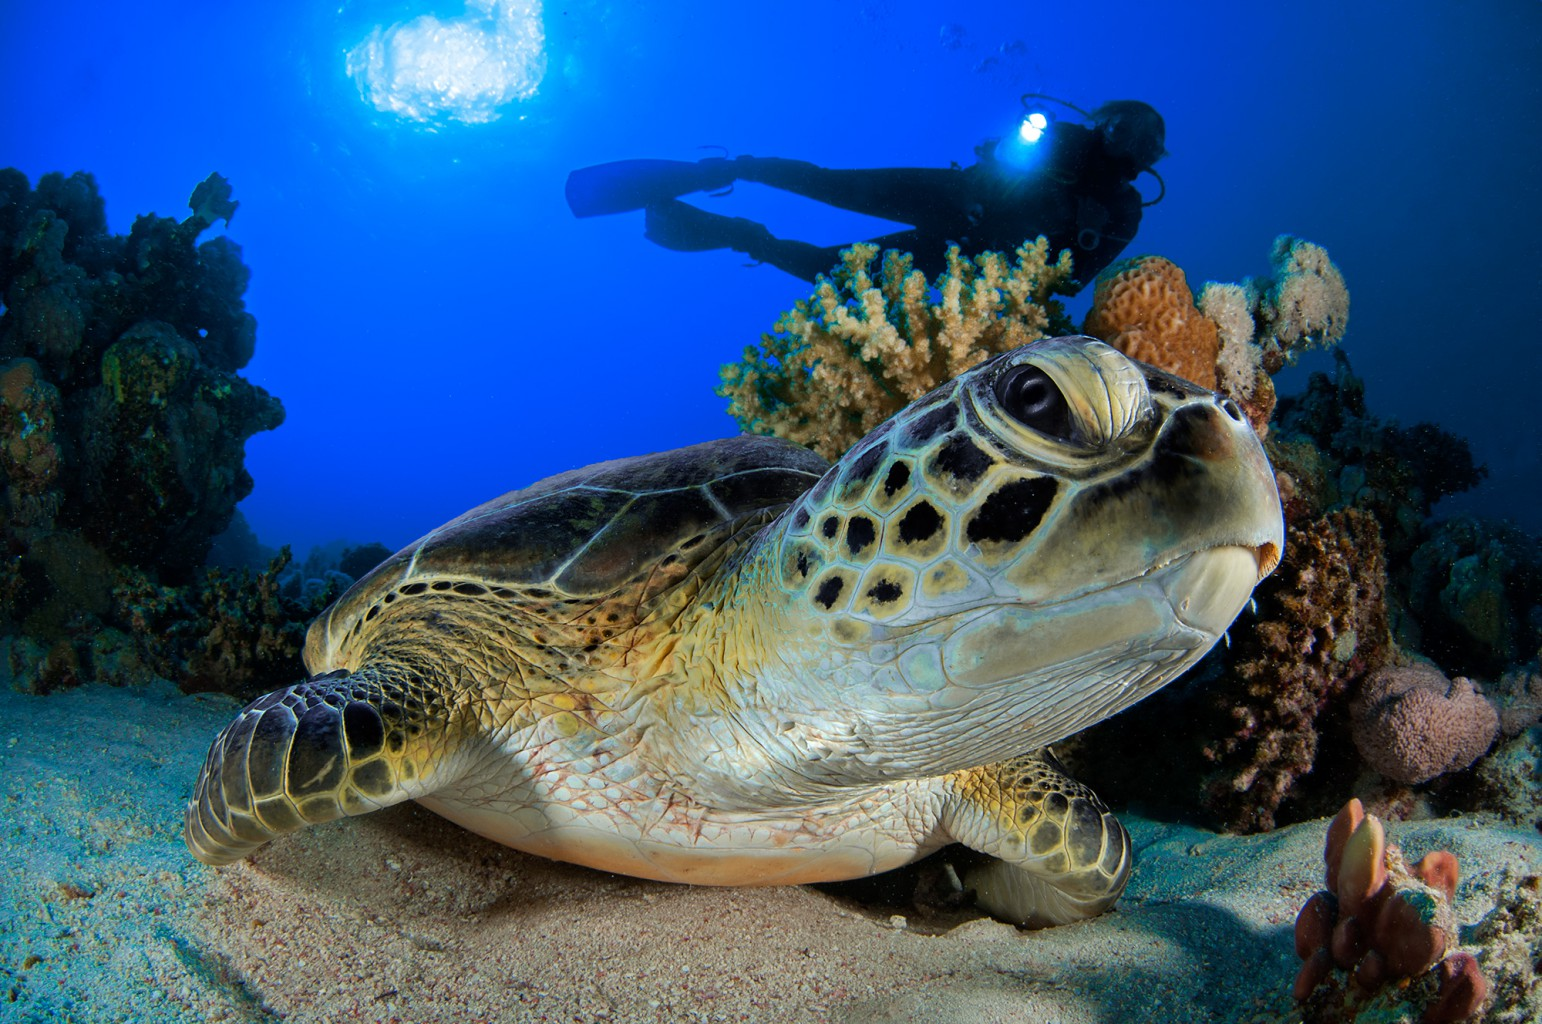 Sea Turtle feeding on Jellyfish, Red Sea - Egypt